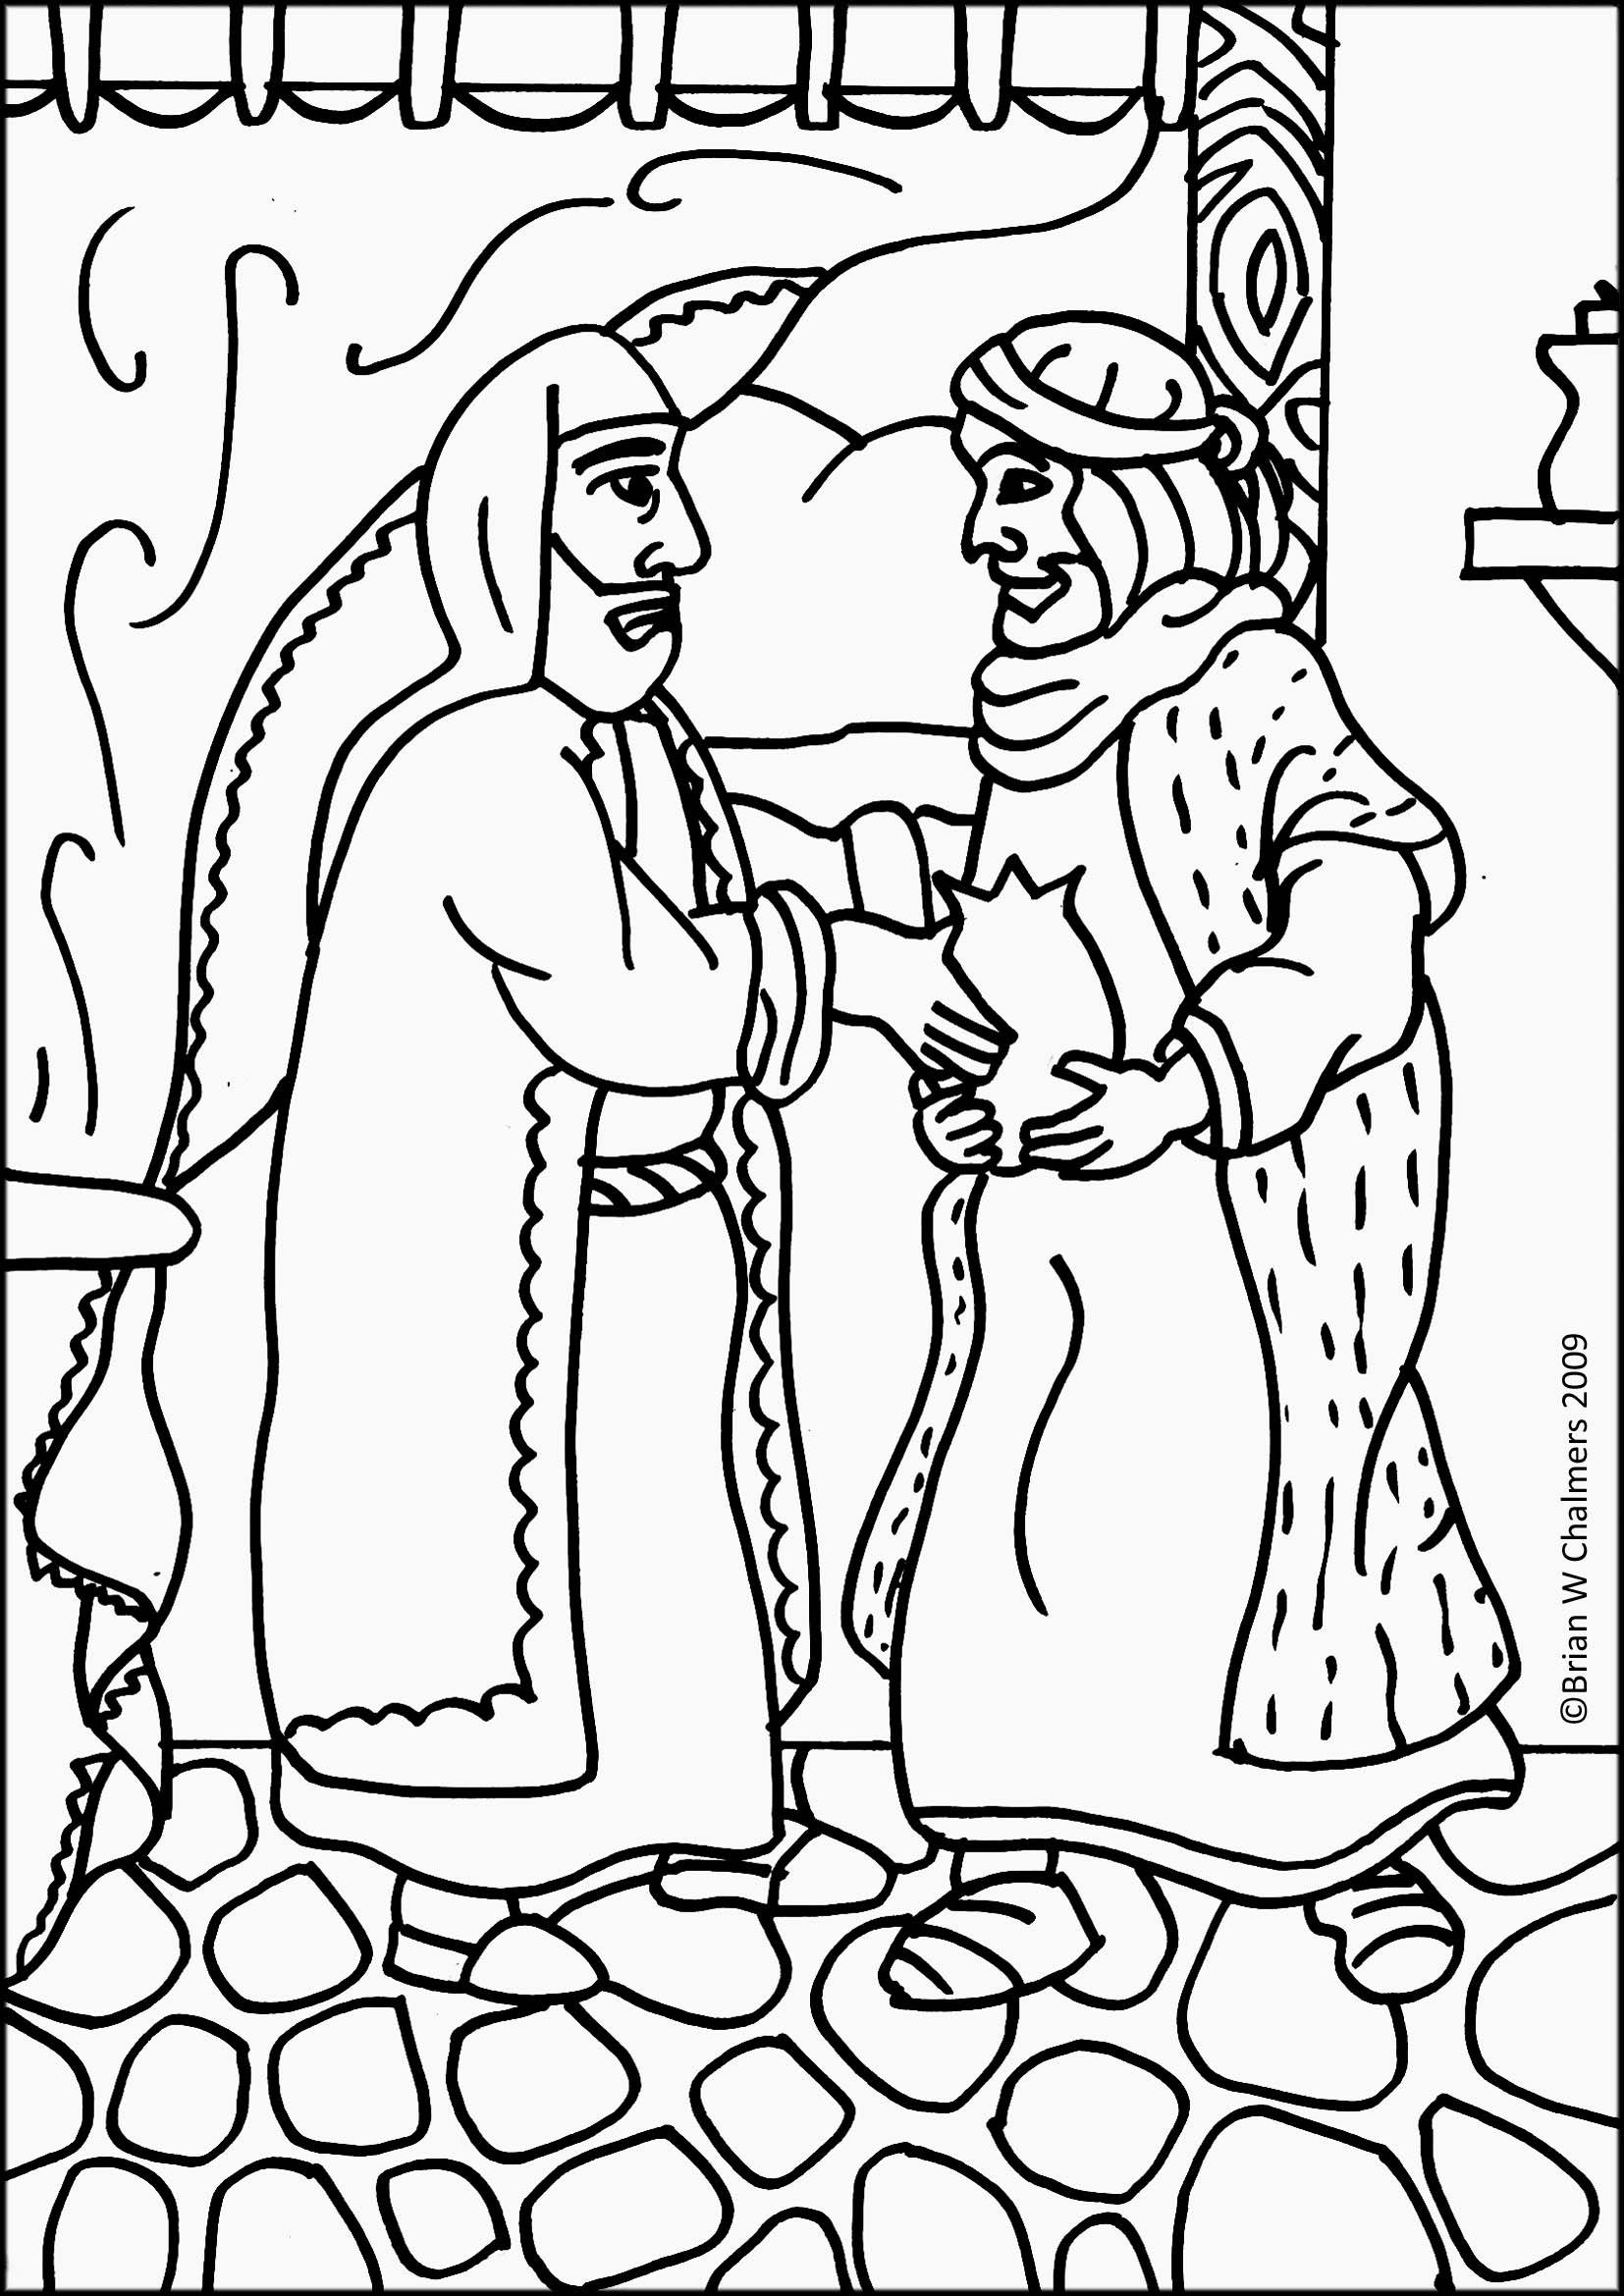 Prodigal Son Coloring Pages Preschool - Coloring Home